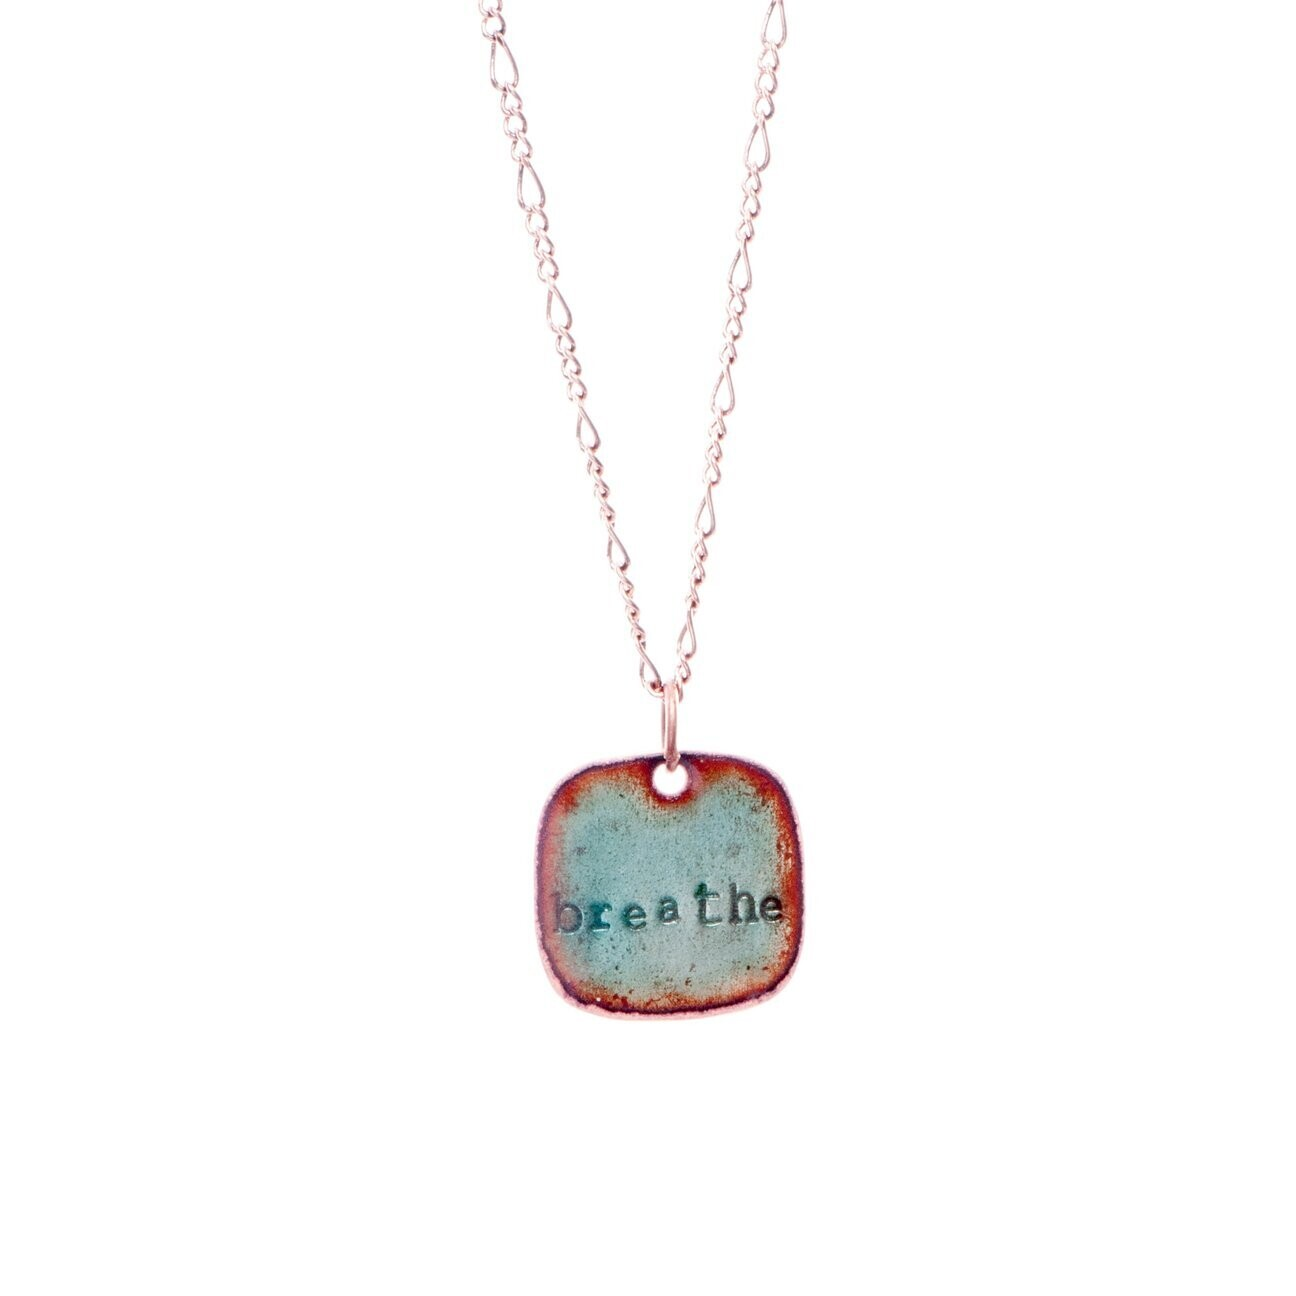 Breathe Necklace - Aflame